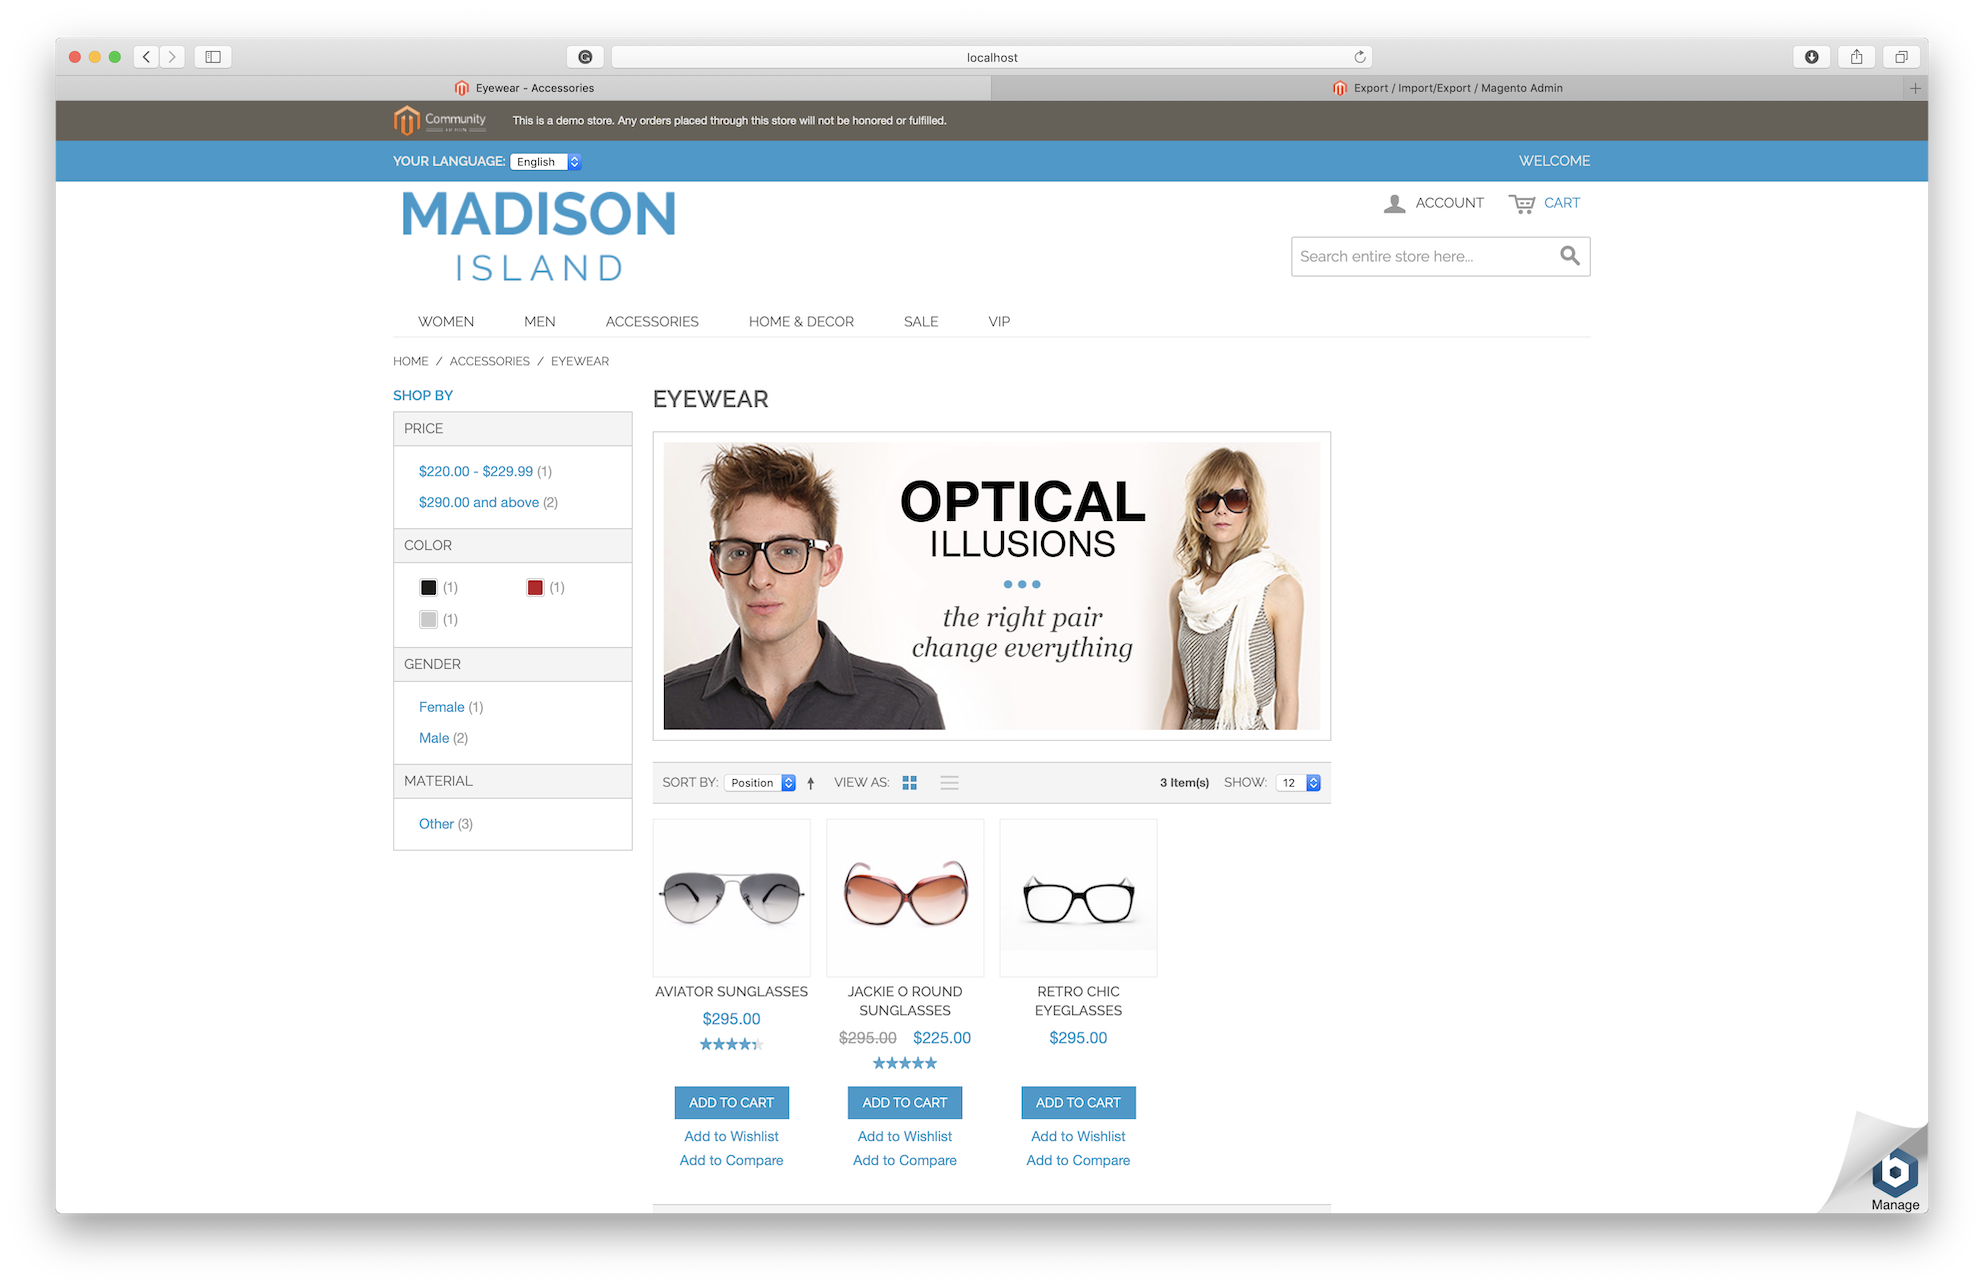 Magento store sample to migrate to Shopify